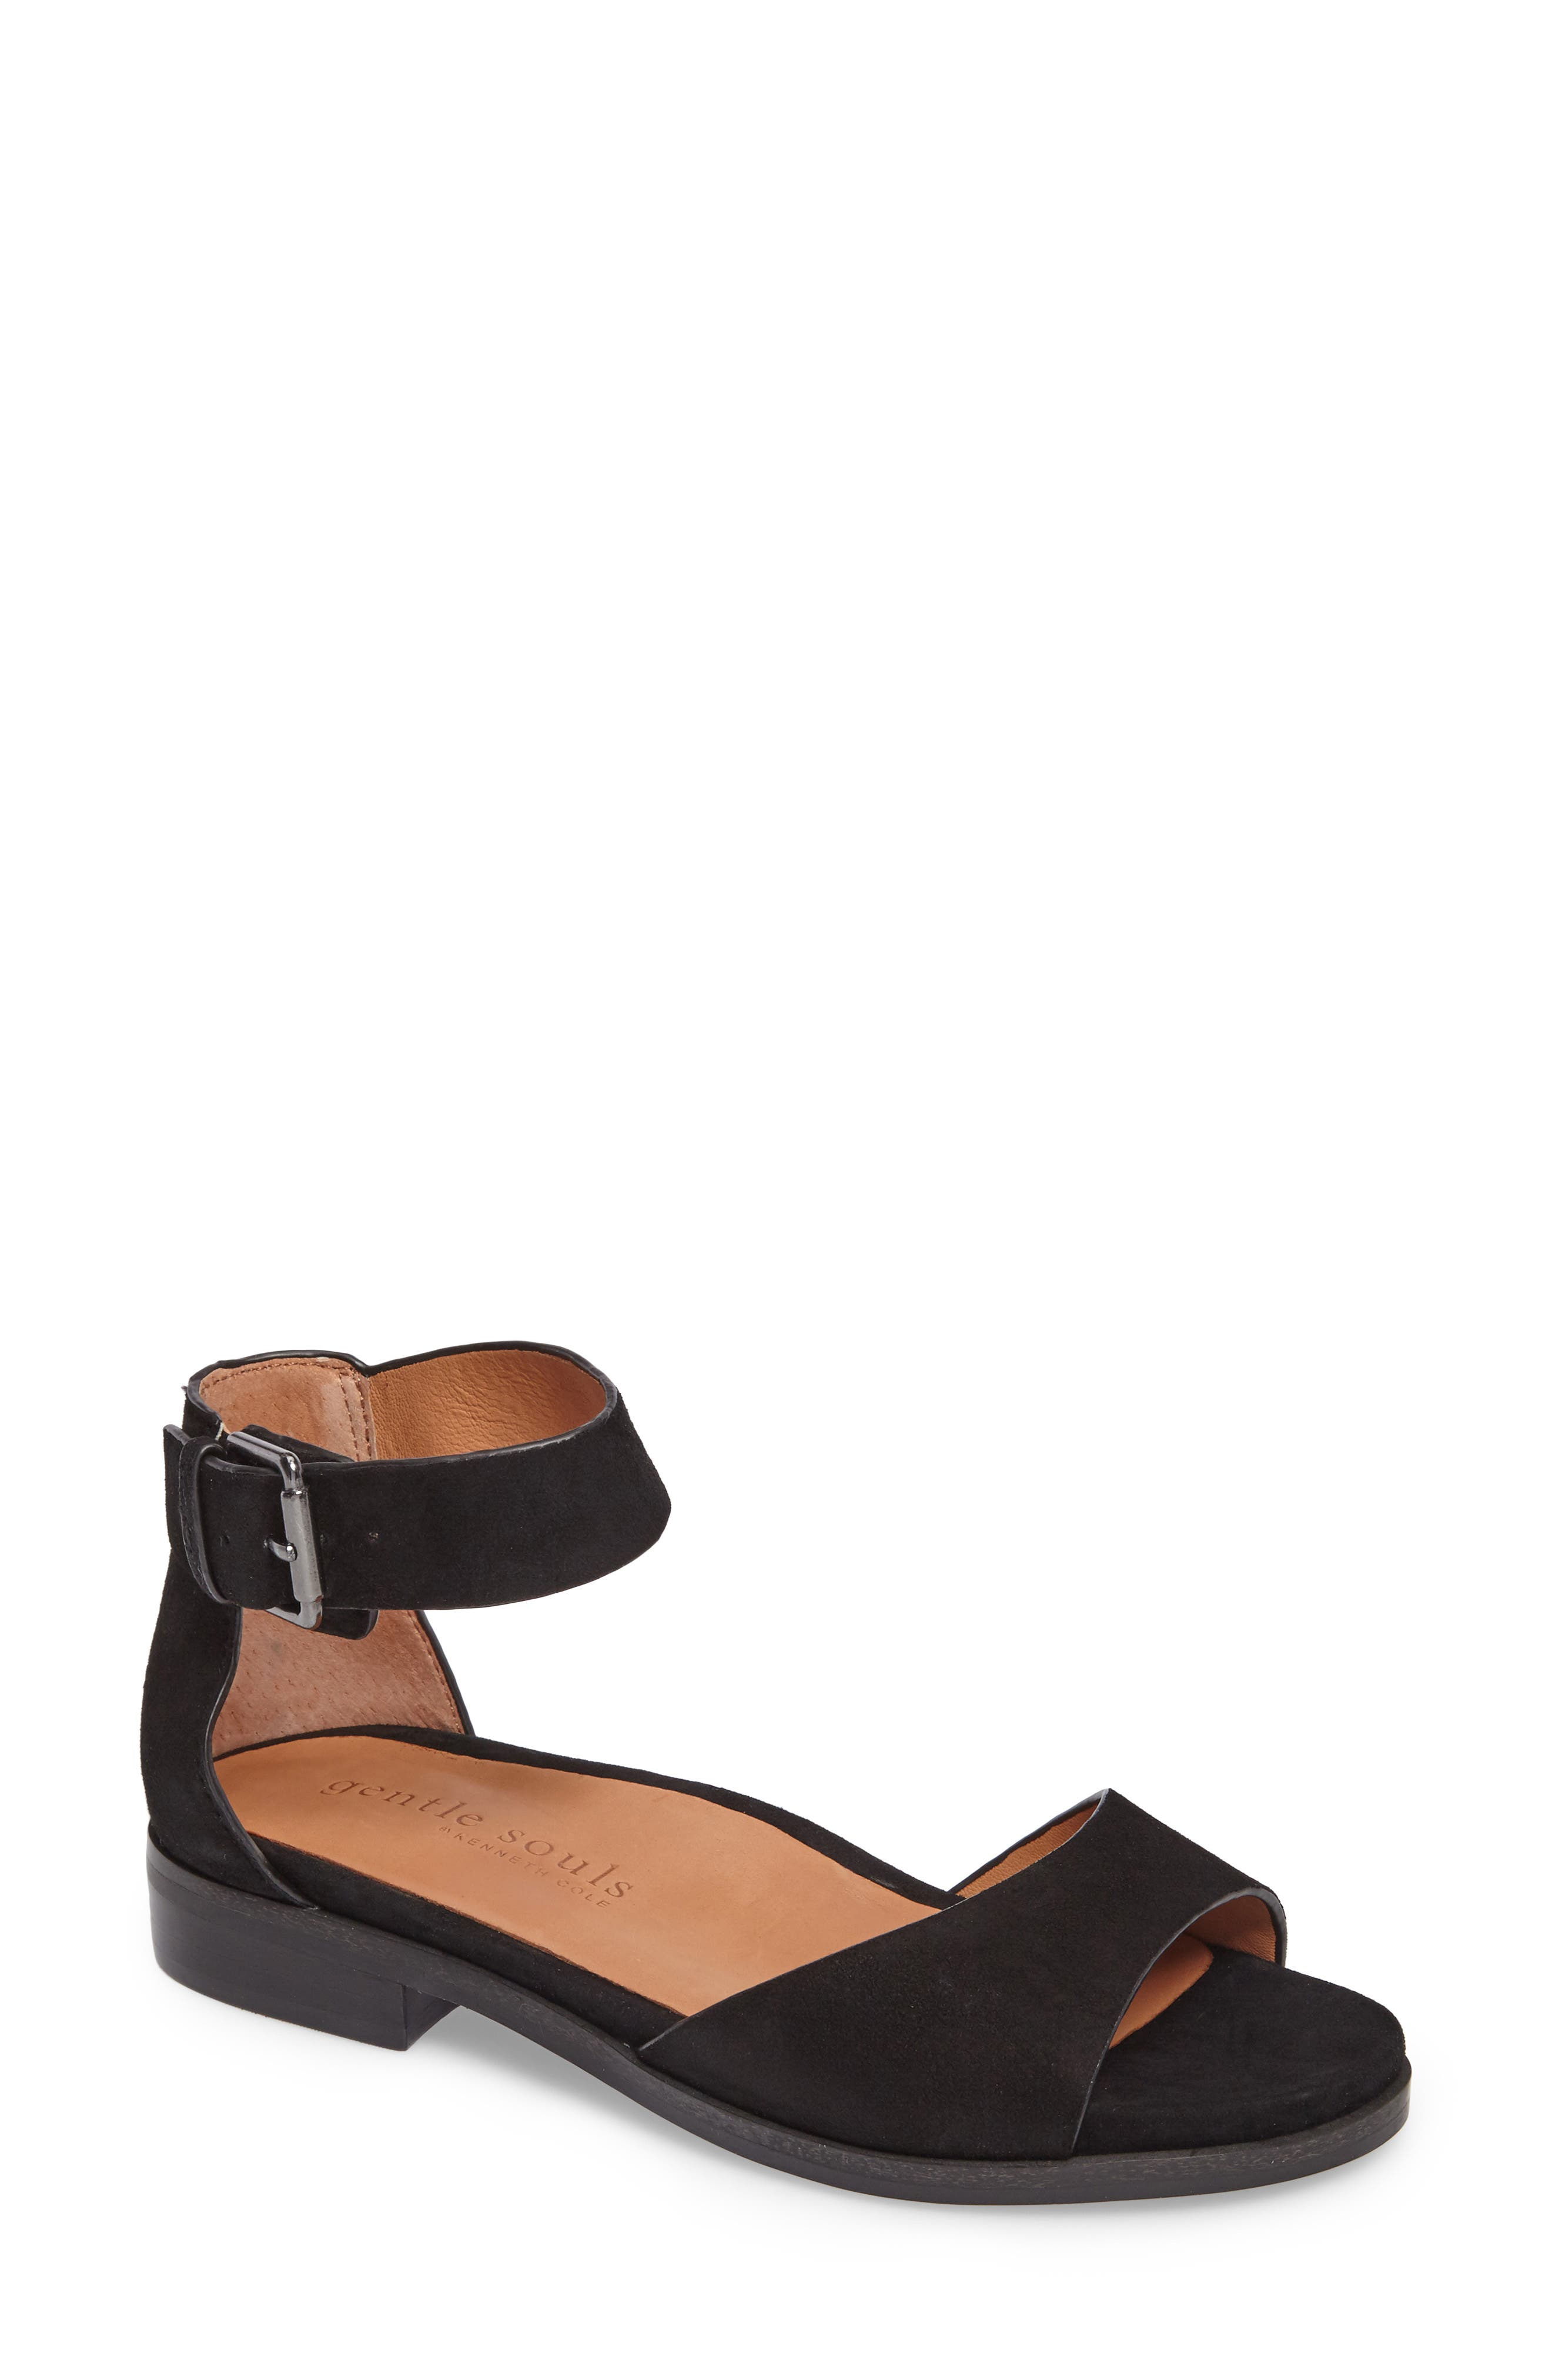 Alternate Image 1 Selected - Gentle Souls Gracey Sandal (Women)